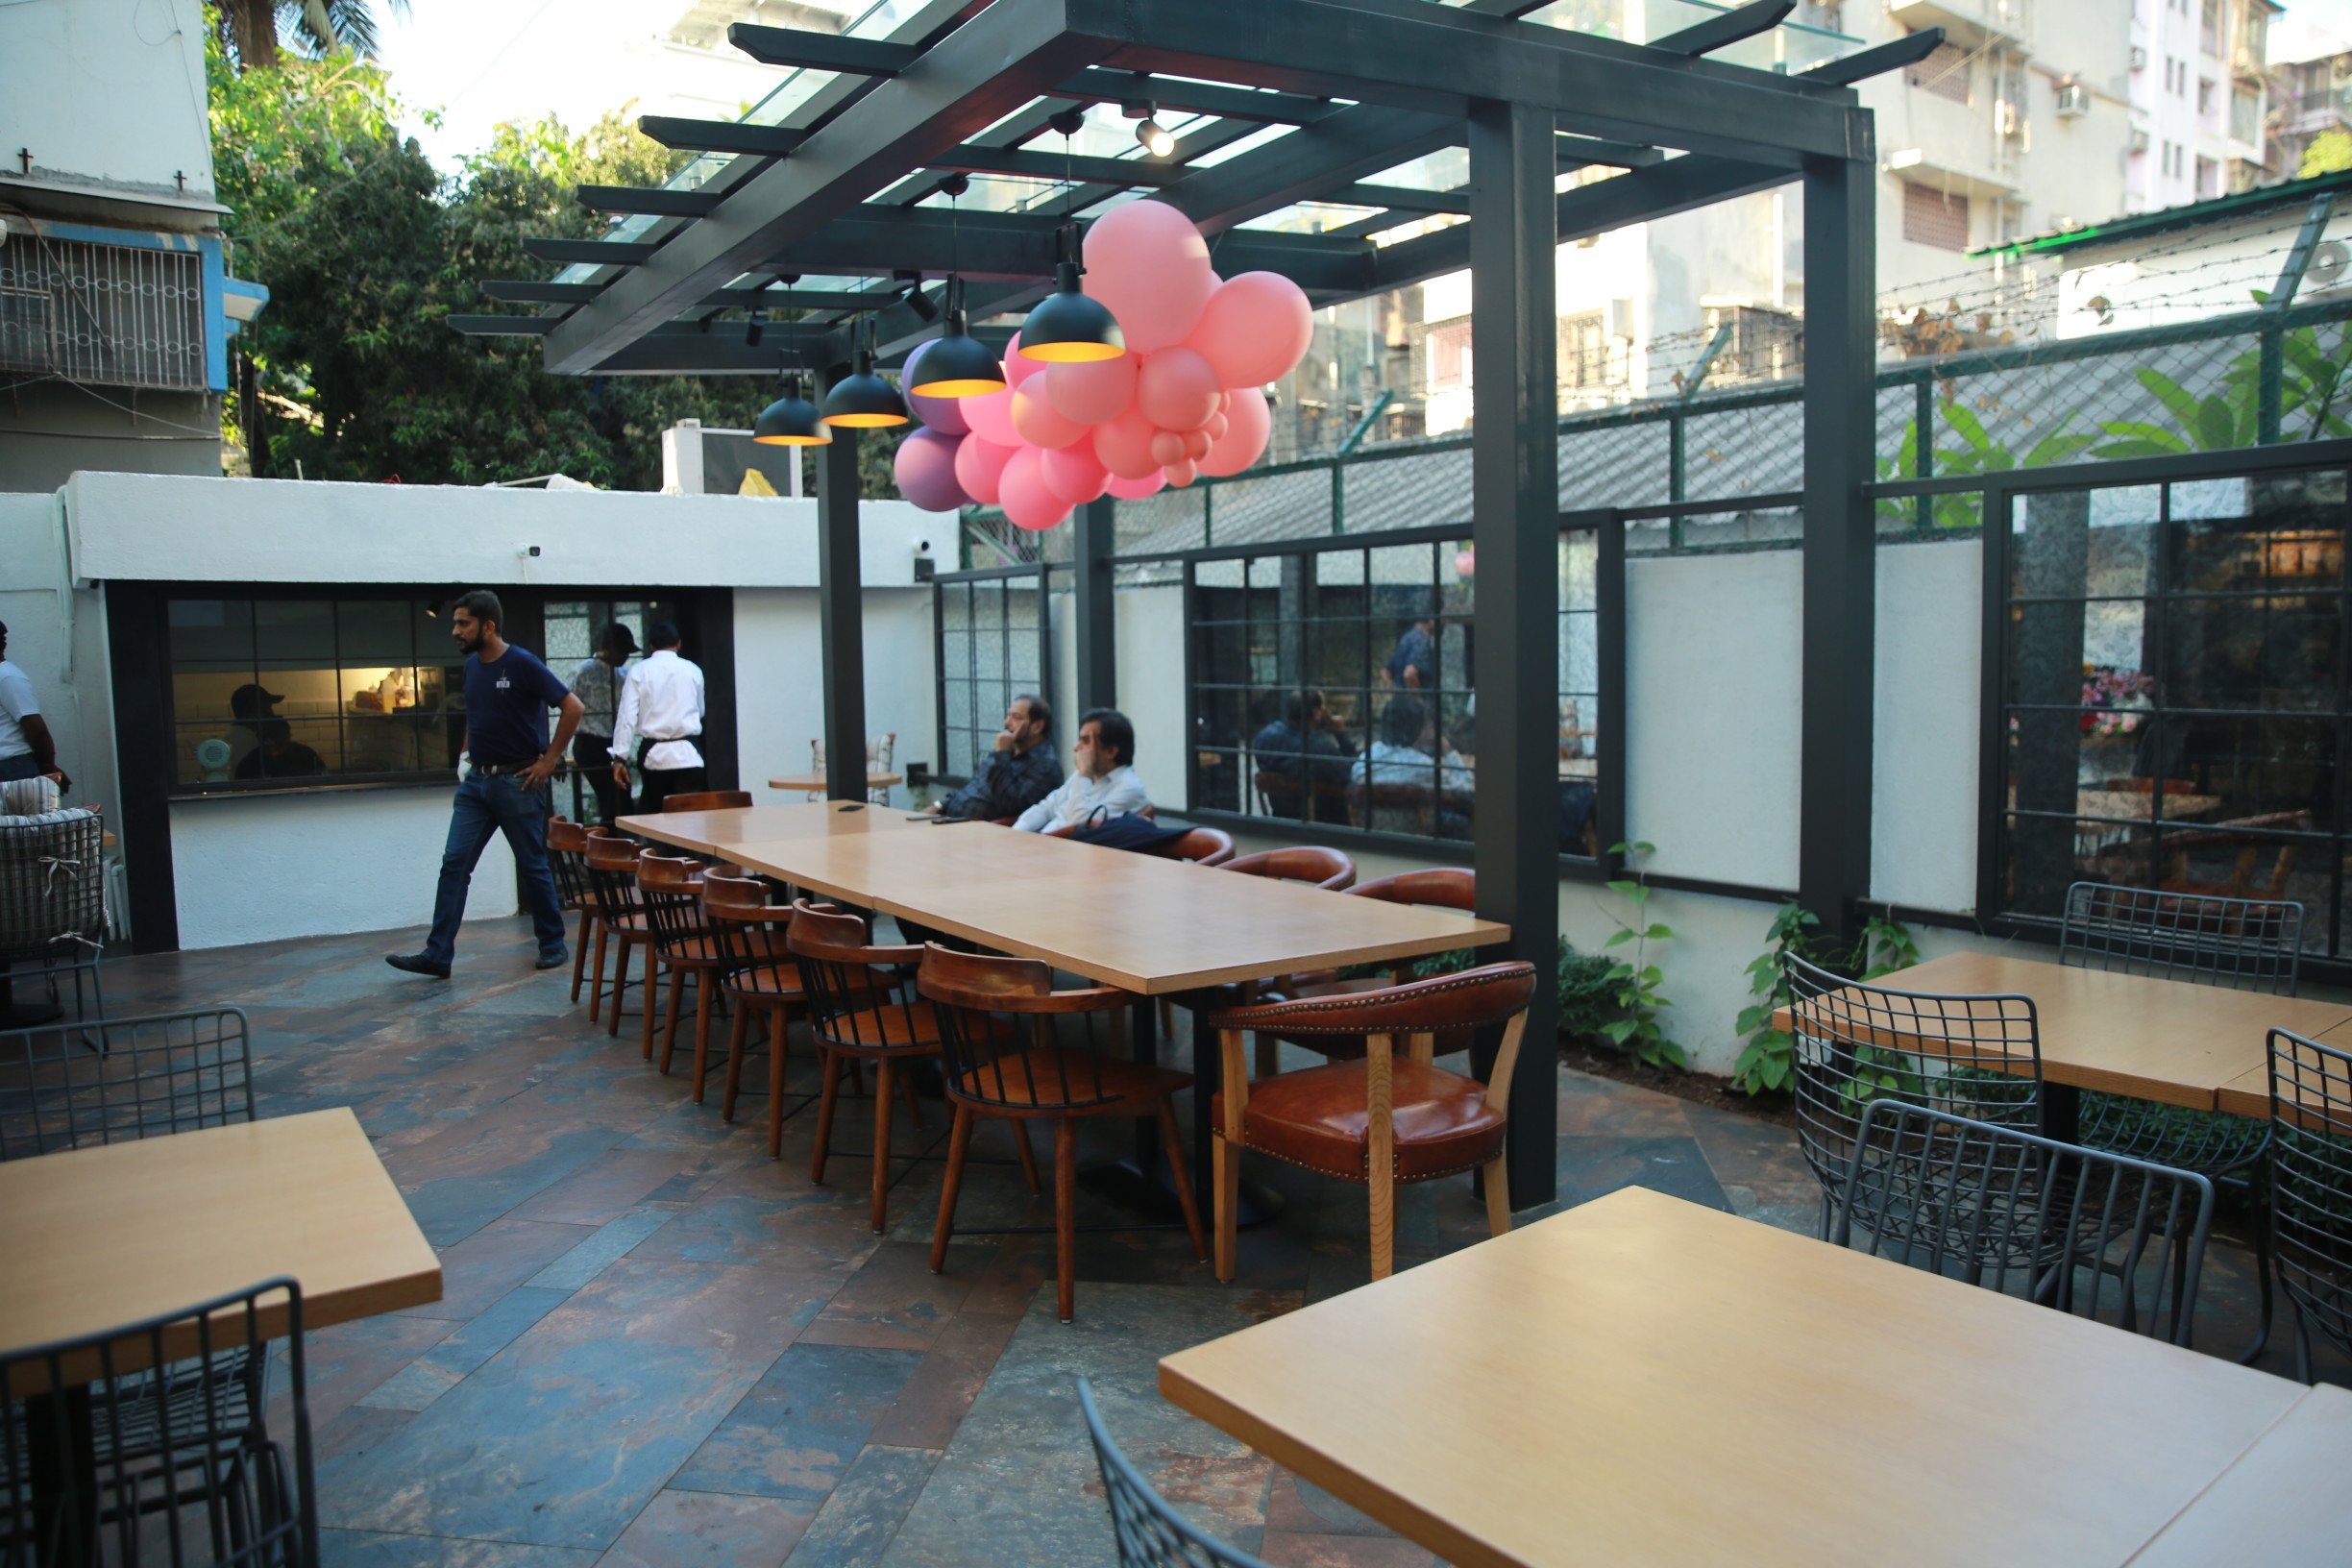 After 111 outlets across 16 countries, Caffe Ritazza has come to Mumbai and how!